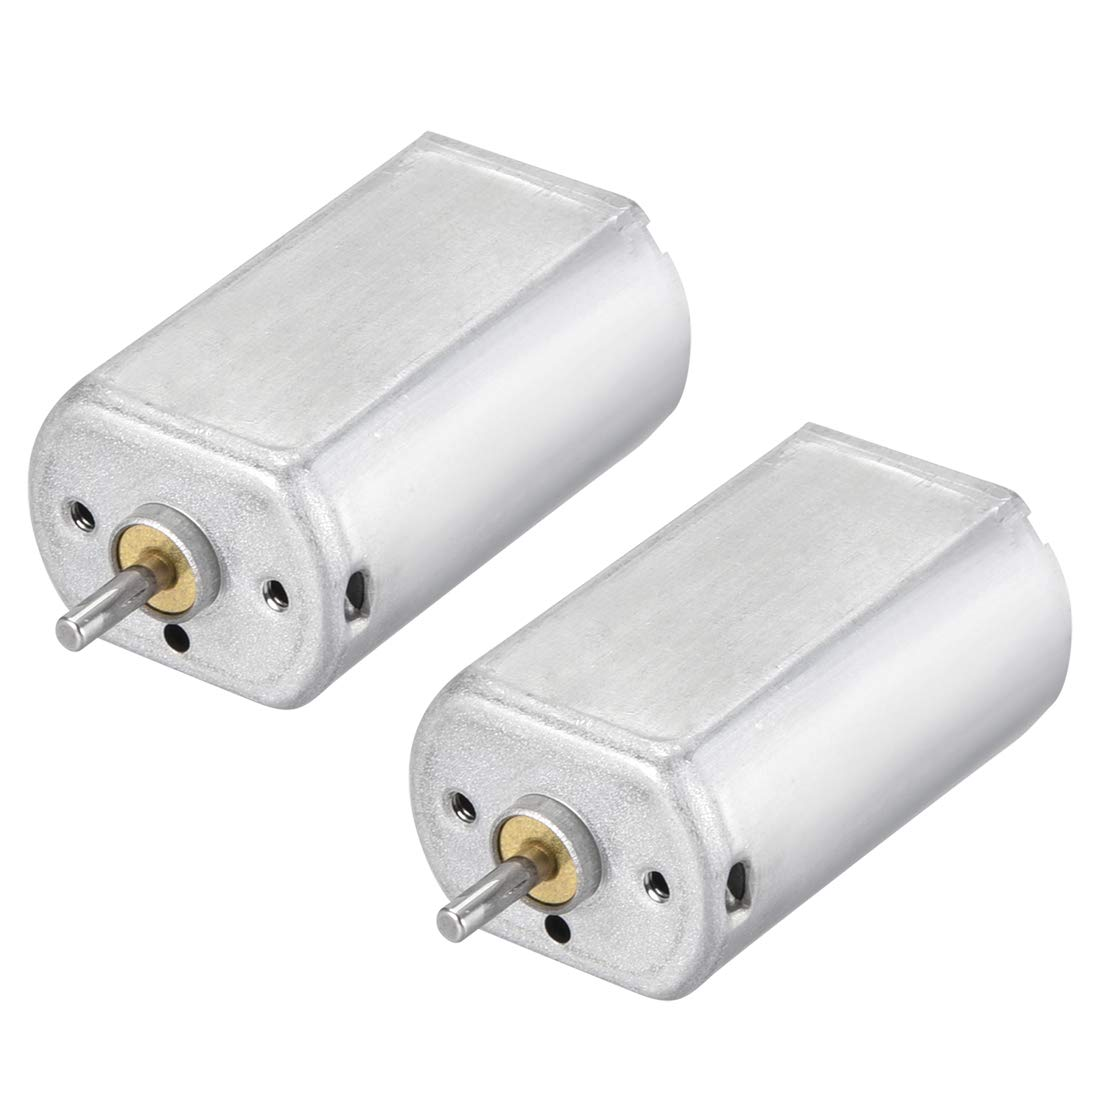 uxcell DC Motor 1.5V//1500RPM 3V//3500RPM 0.02A Electric Motor Round Shaft for RC Boat Toys Model 5Pcs